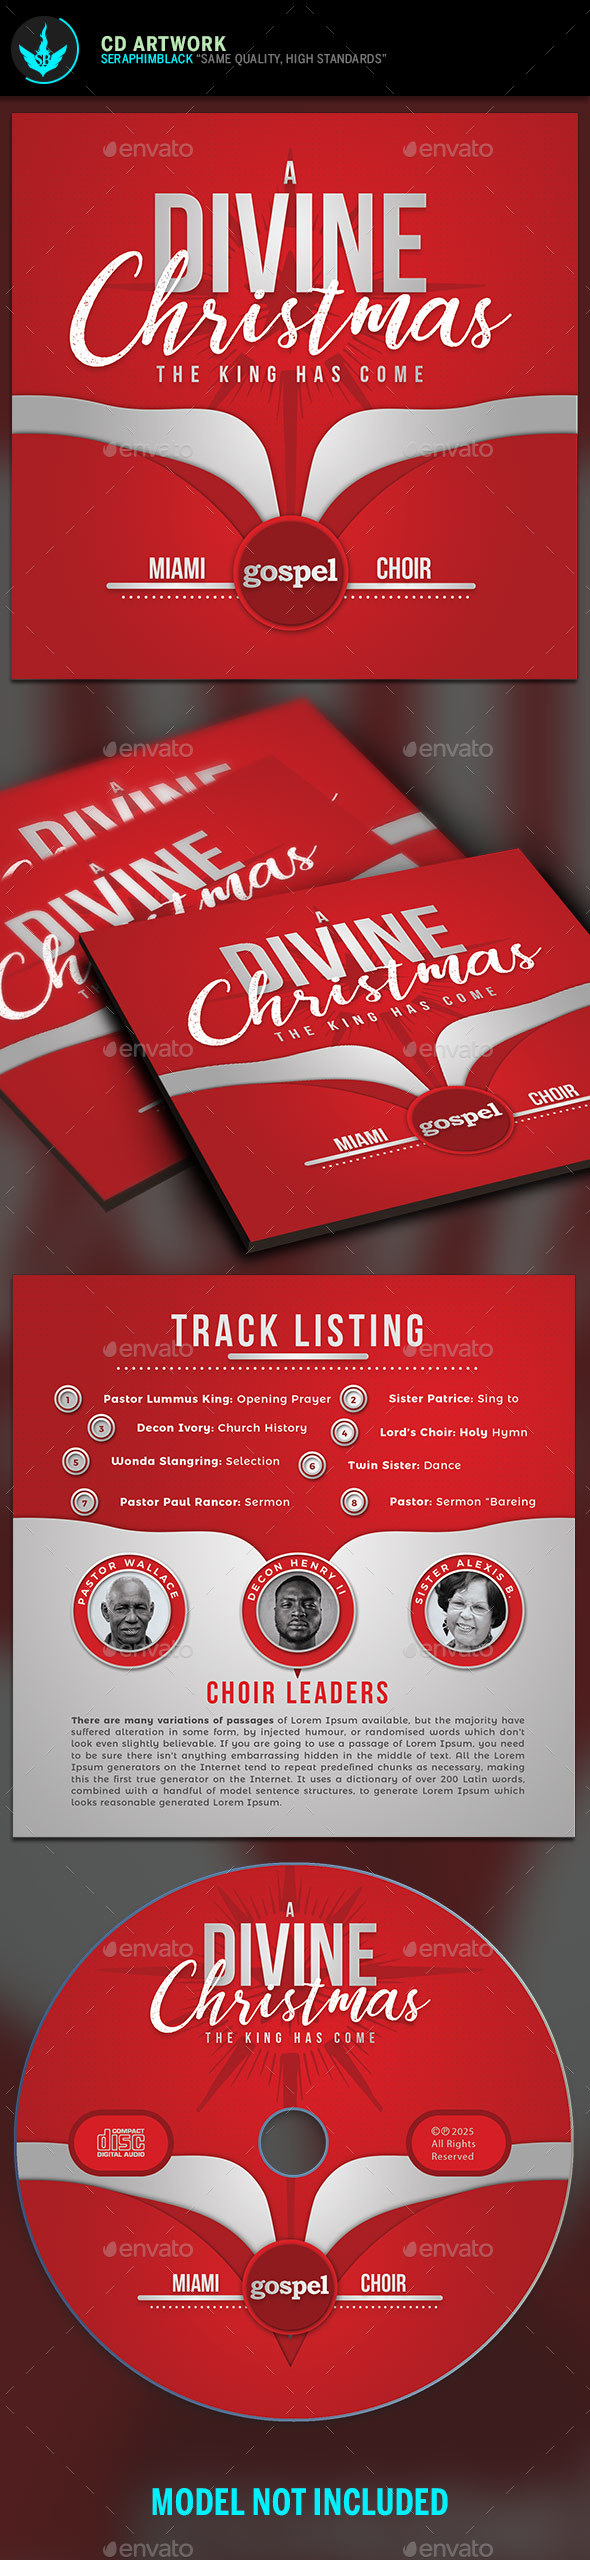 A Divine Christmas CD Template - CD & DVD Artwork Print Templates